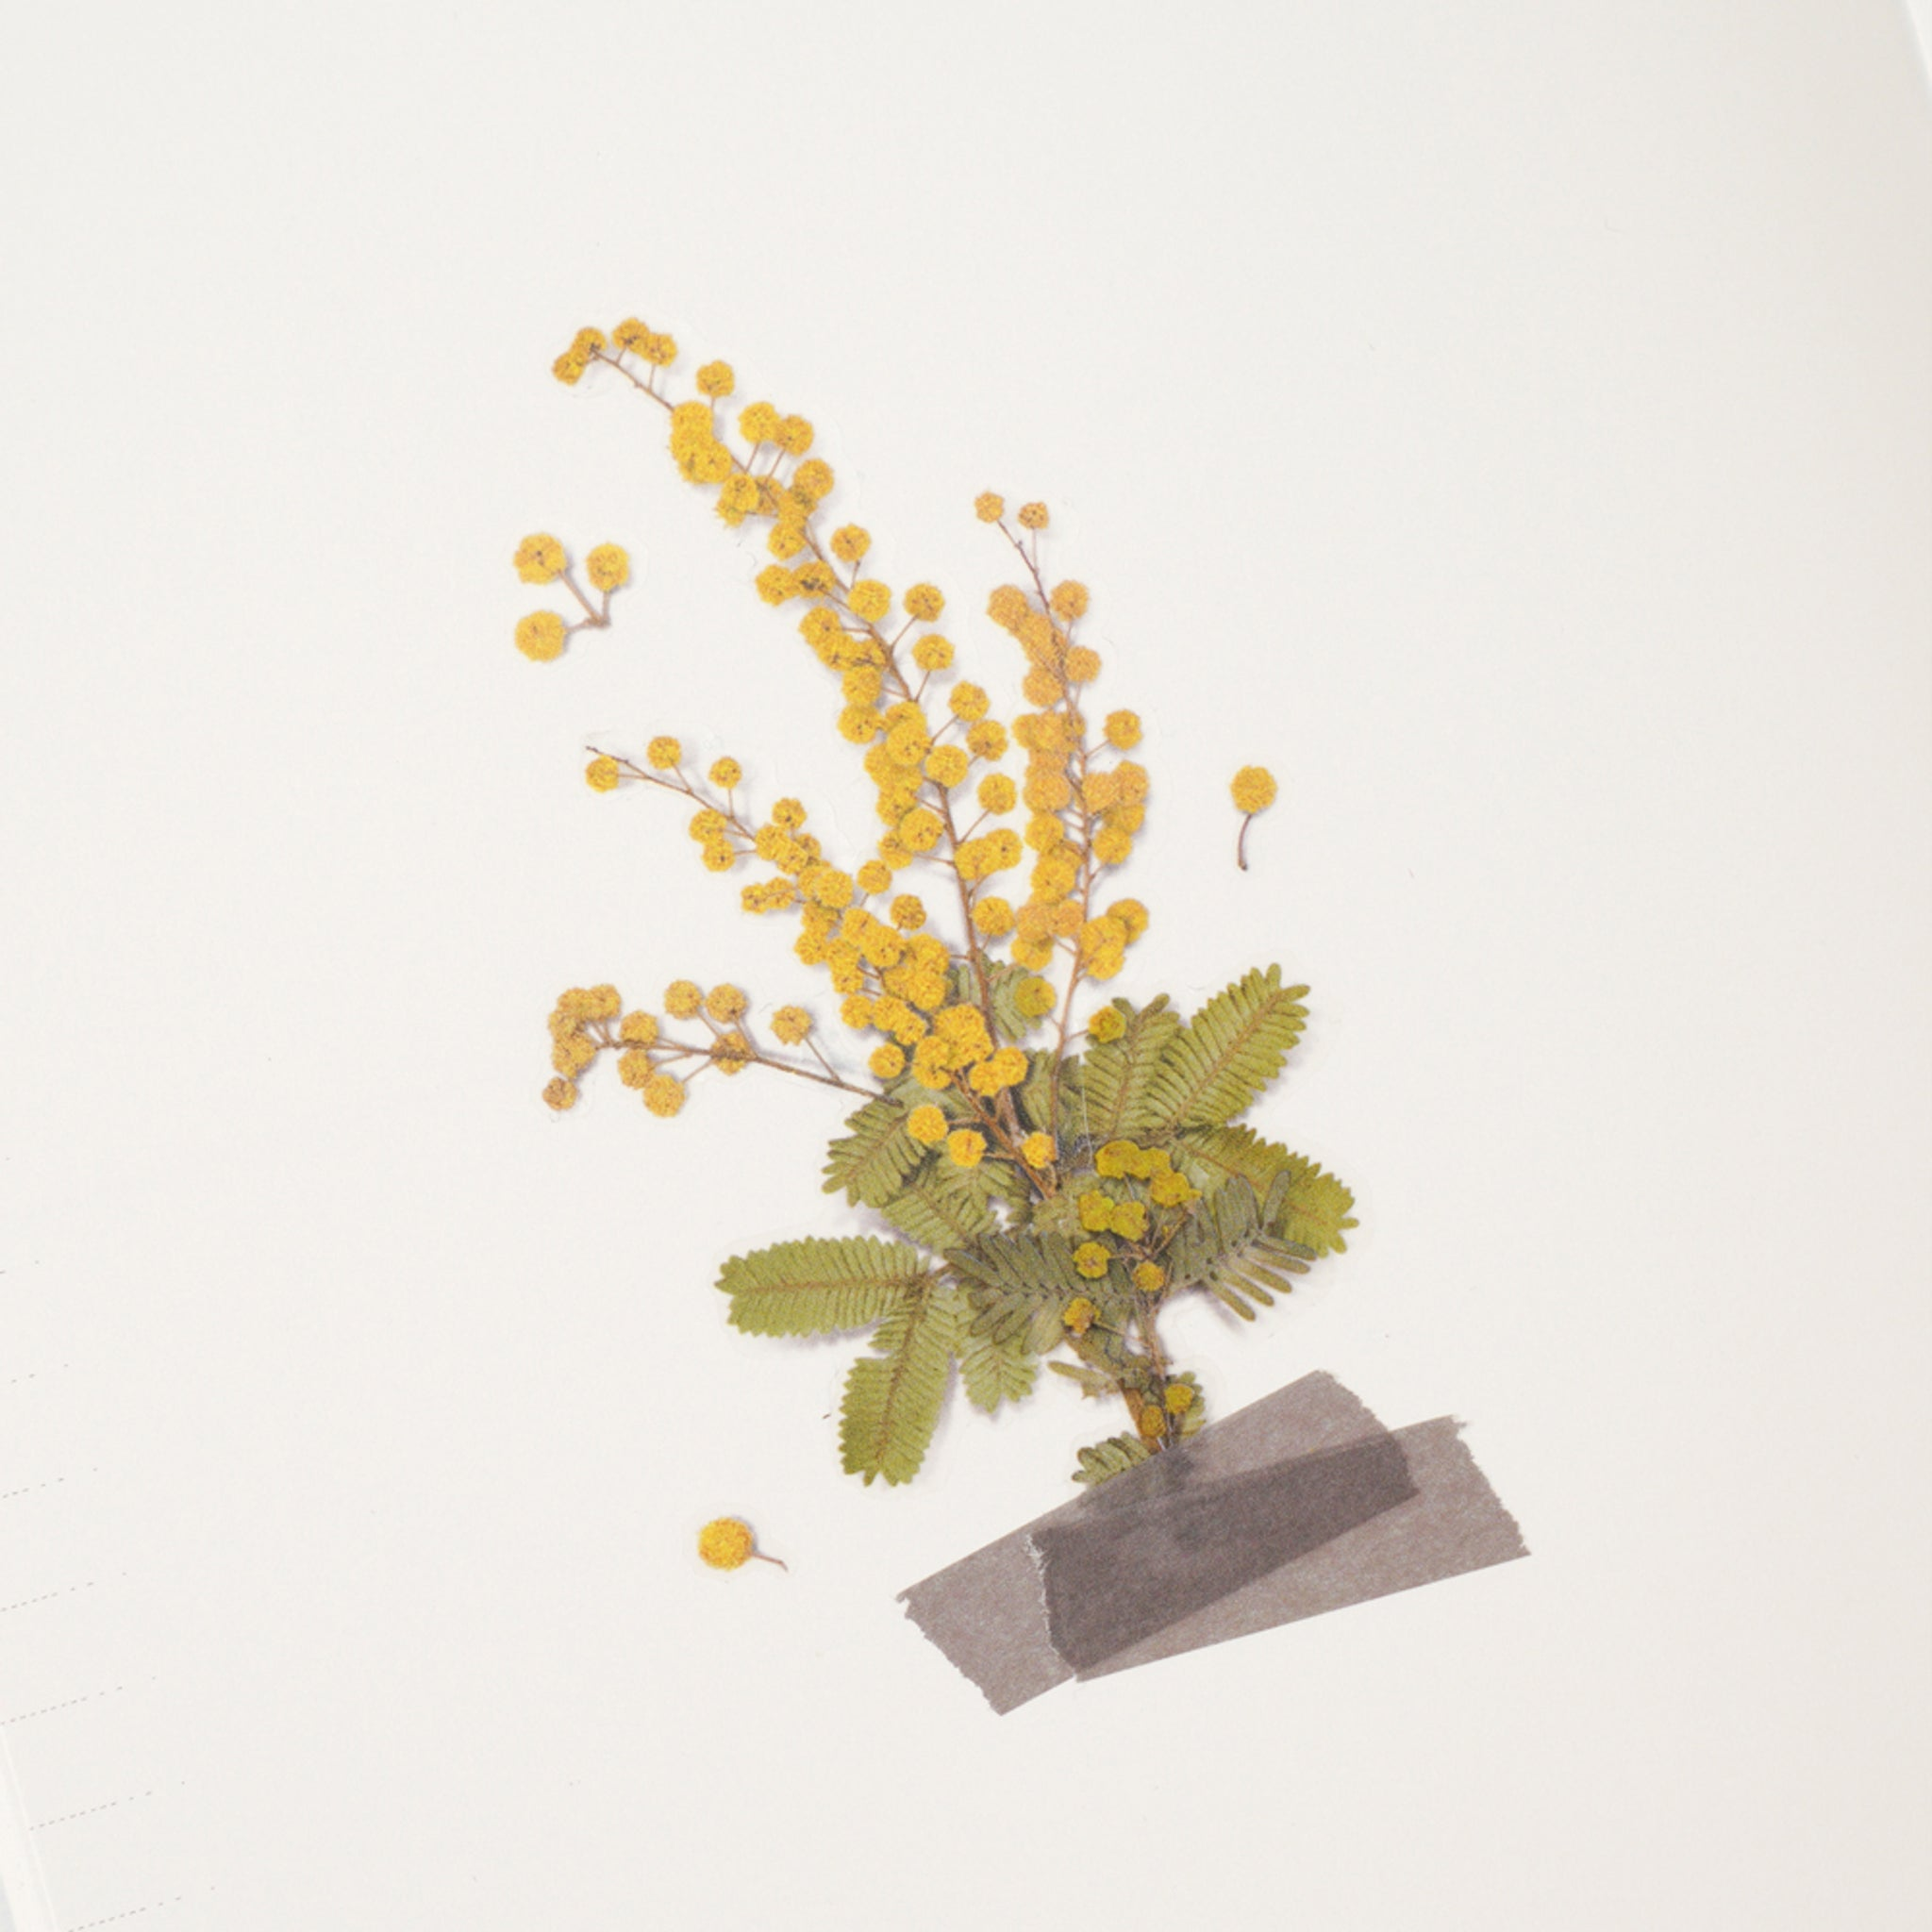 Appree Pressed Flower Sticker Mimosa